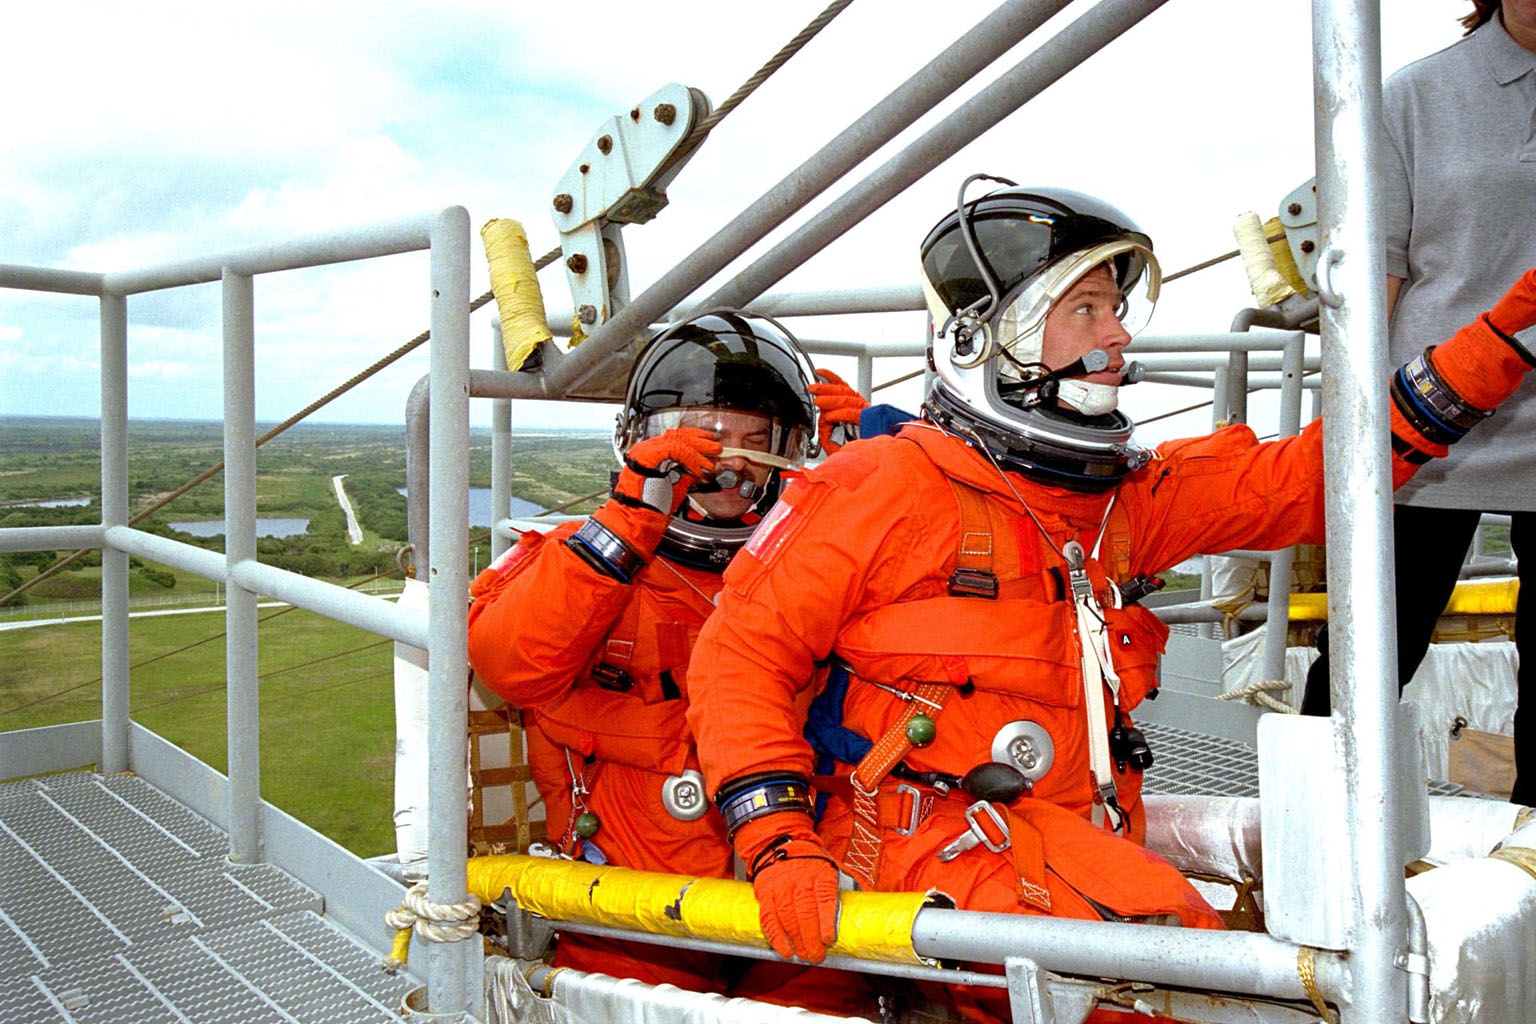 Members of the STS-90 crew participate in mock emergency egress activities during the Terminal Countdown Demonstration Test (TCDT) at KSC's Launch Pad 39B. The TCDT is held at KSC prior to each Space Shuttle flight to provide crews with the opportunity to participate in simulated countdown activities. The STS-90 crew members shown here are Commander Richard Searfoss (front) and Pilot Scott Altman. Columbia is targeted for launch of STS-90 on April 16 at 2:19 p.m. EDT and will be the second mission of 1998. The mission is scheduled to last nearly 17 days